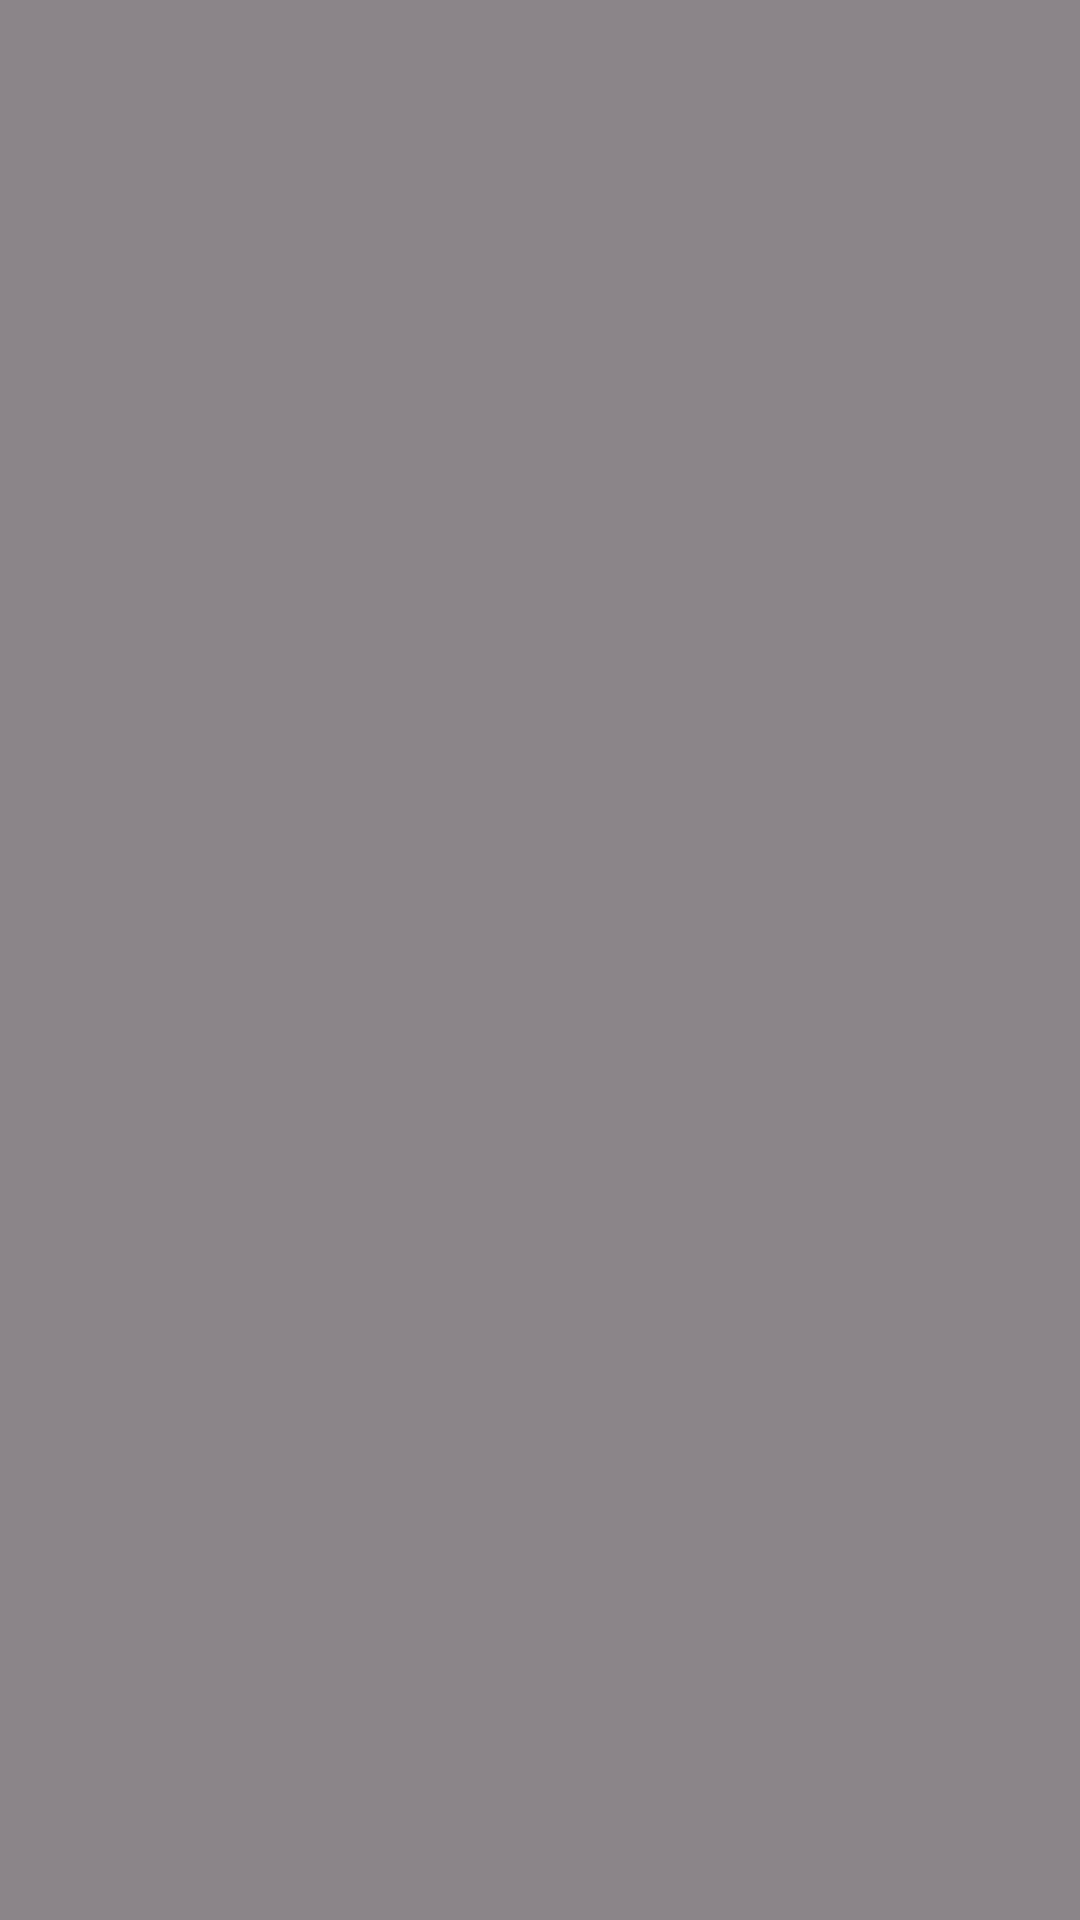 1080x1920 Taupe Gray Solid Color Background